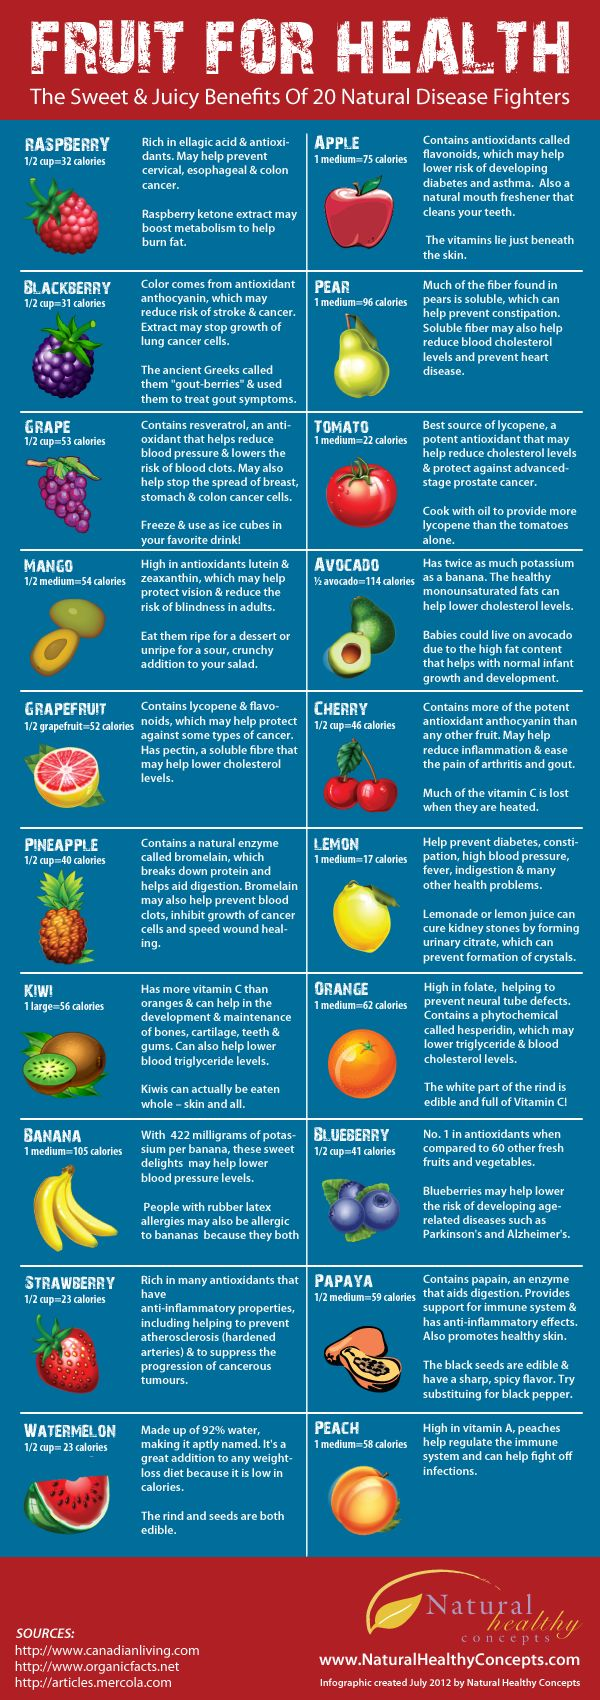 What is it about the natural goodness of fruit that helps us humans live happier and healthier lives? The folks over at Natural Healthy Concepts have made a list of 20 different fruits and their unique disease-fighting,